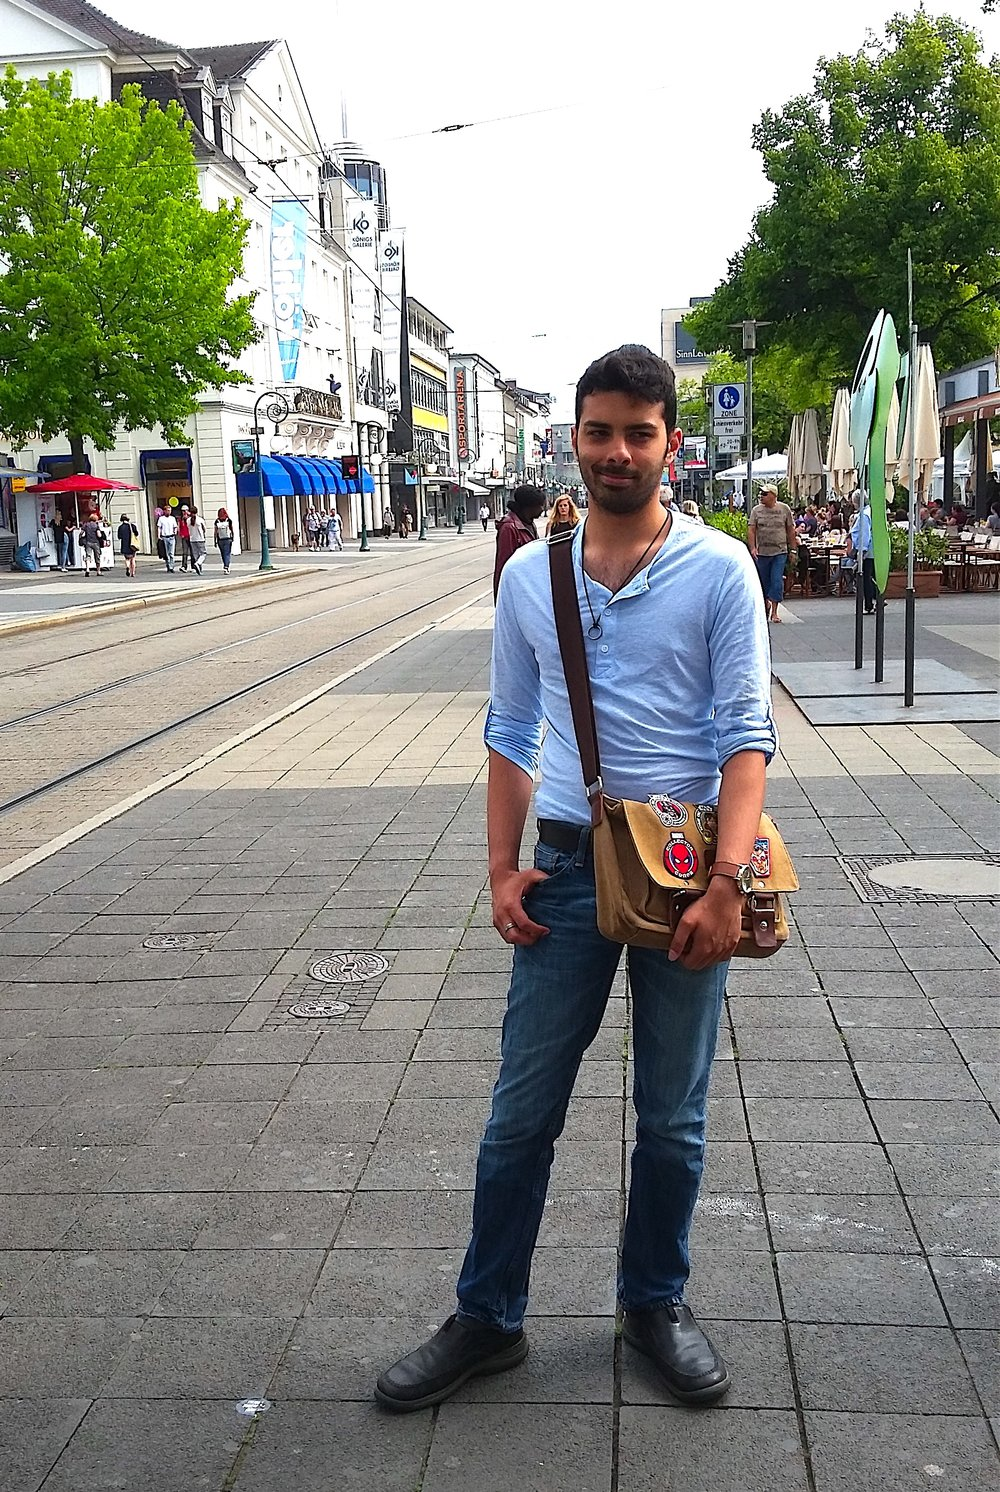 Stephane posing in downtown Kassel, the site of Documenta 14.